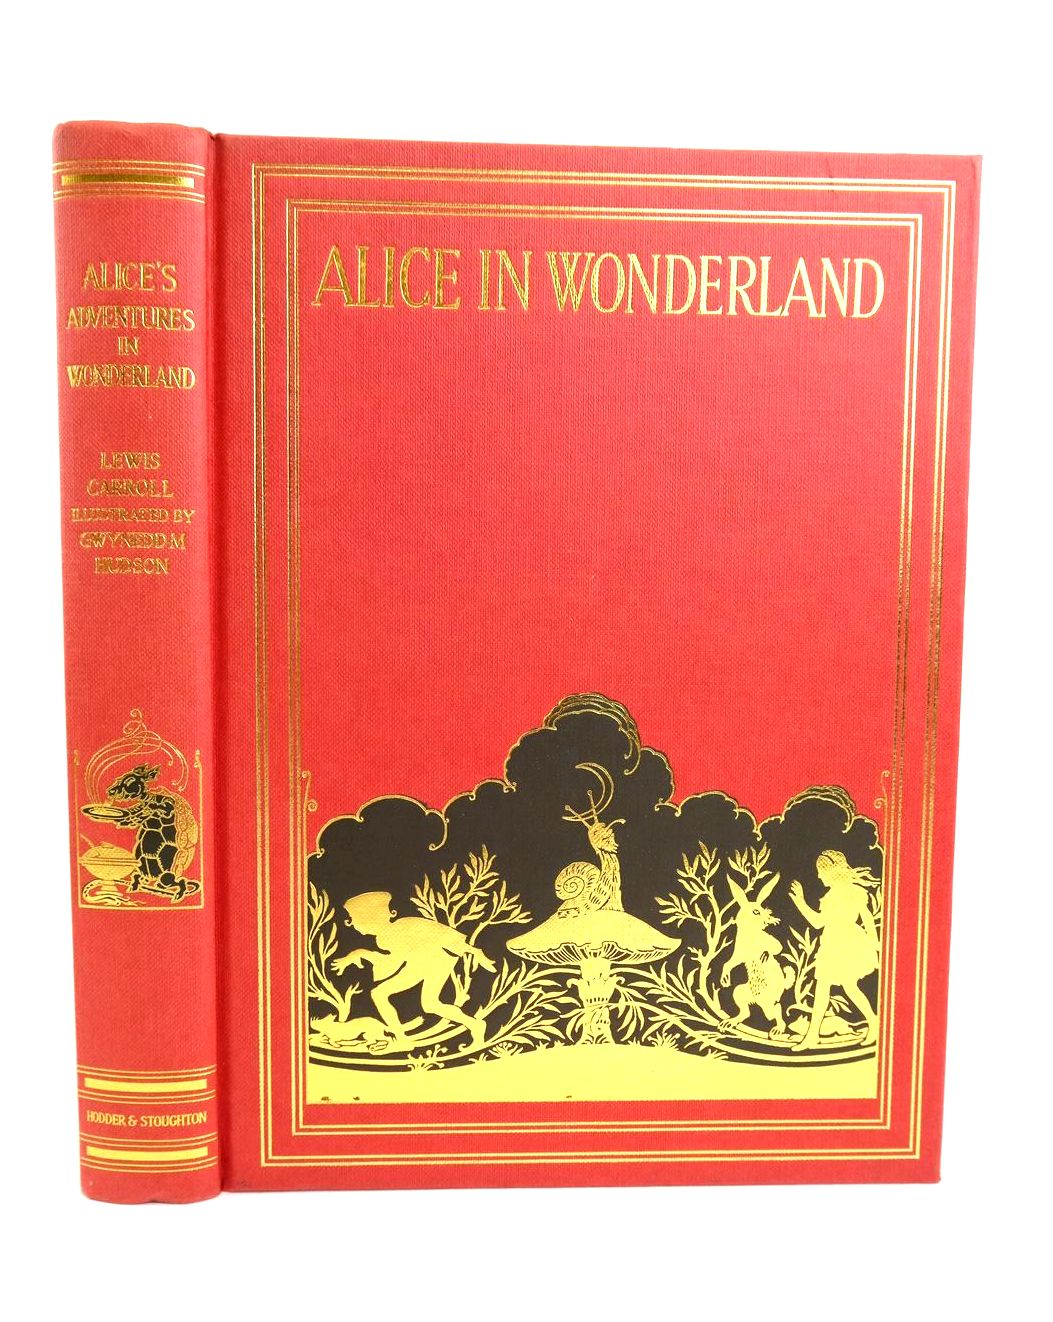 Photo of ALICE'S ADVENTURES IN WONDERLAND written by Carroll, Lewis illustrated by Hudson, Gwynedd M. published by Hodder & Stoughton Children's Books (STOCK CODE: 1318728)  for sale by Stella & Rose's Books